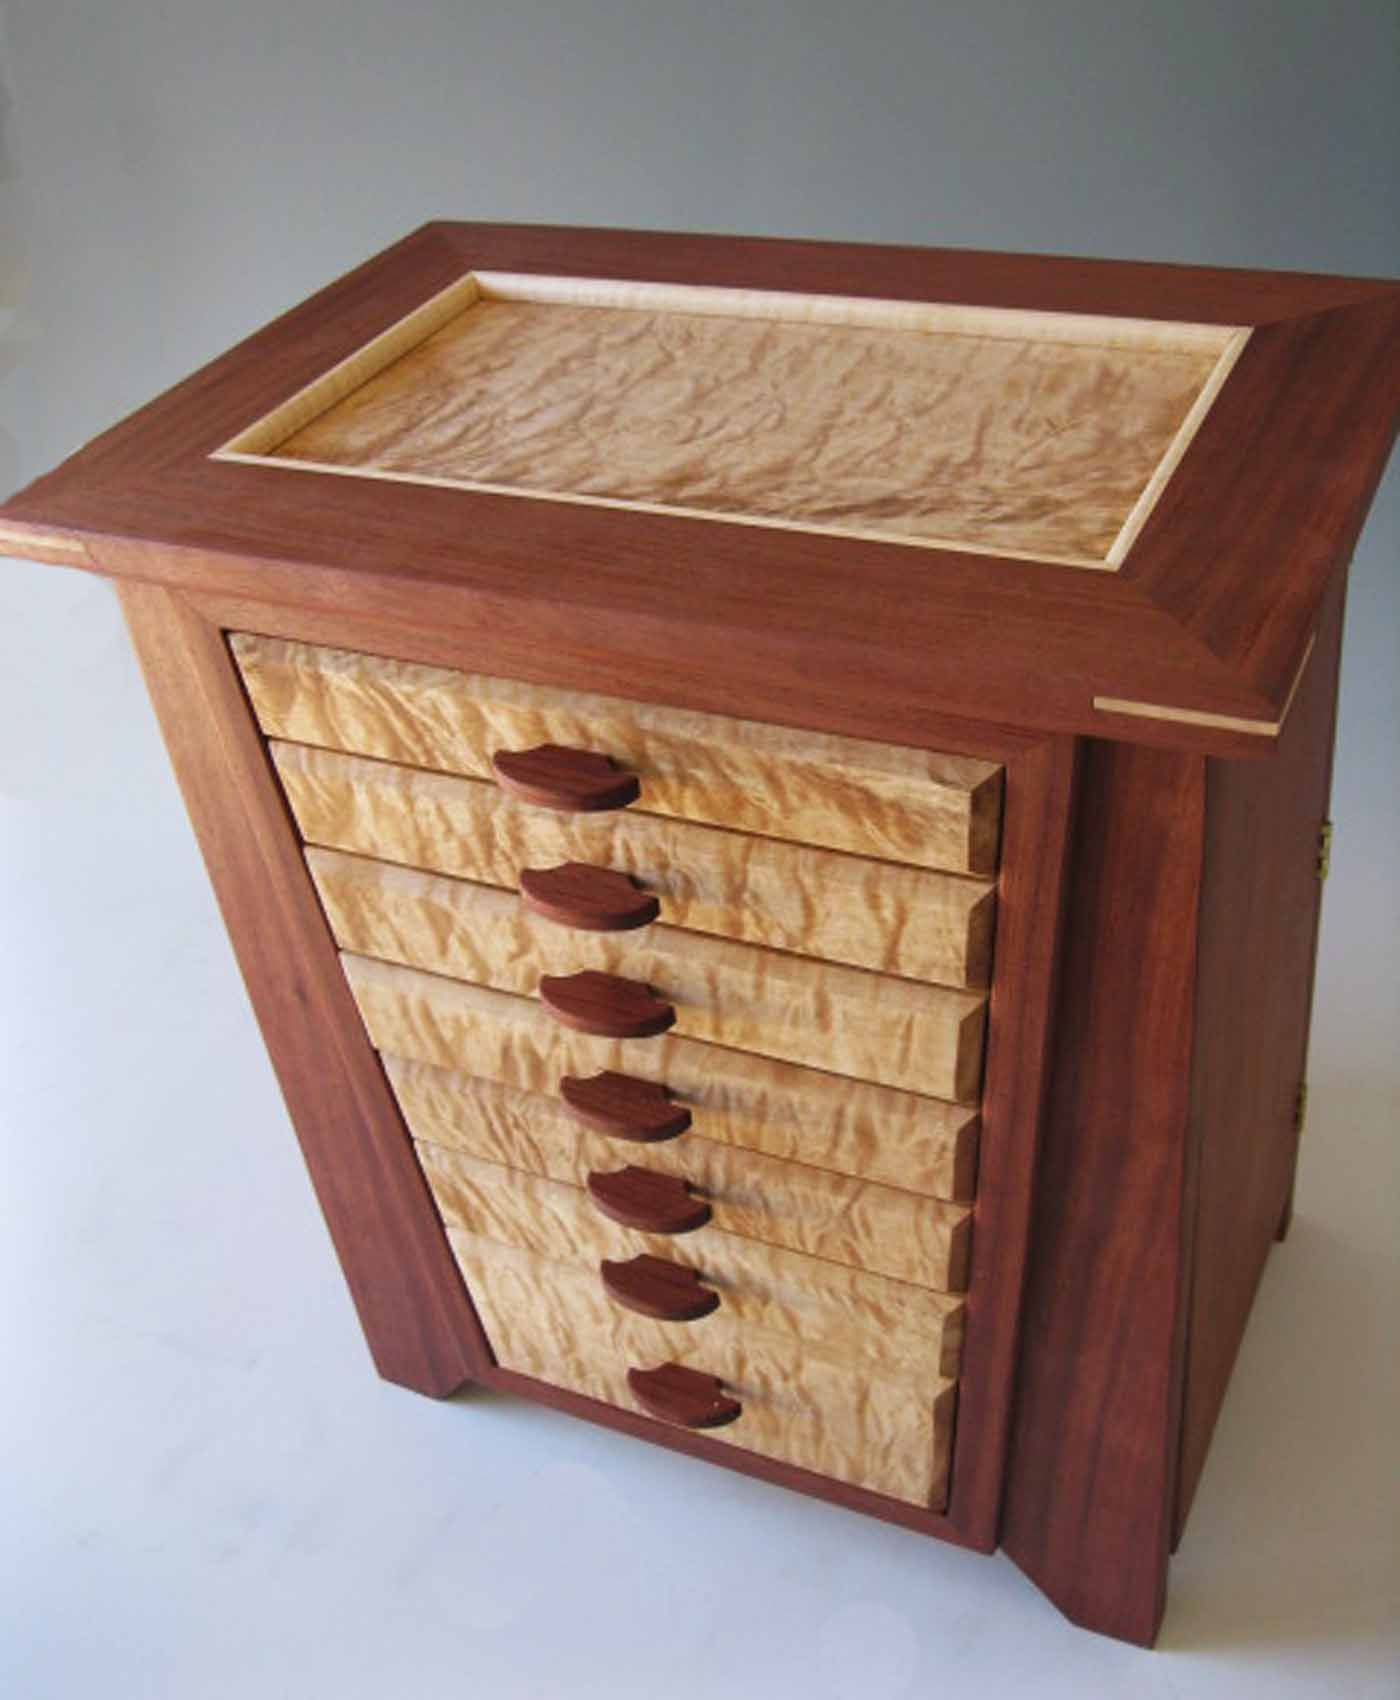 Pin on Jewelry boxes